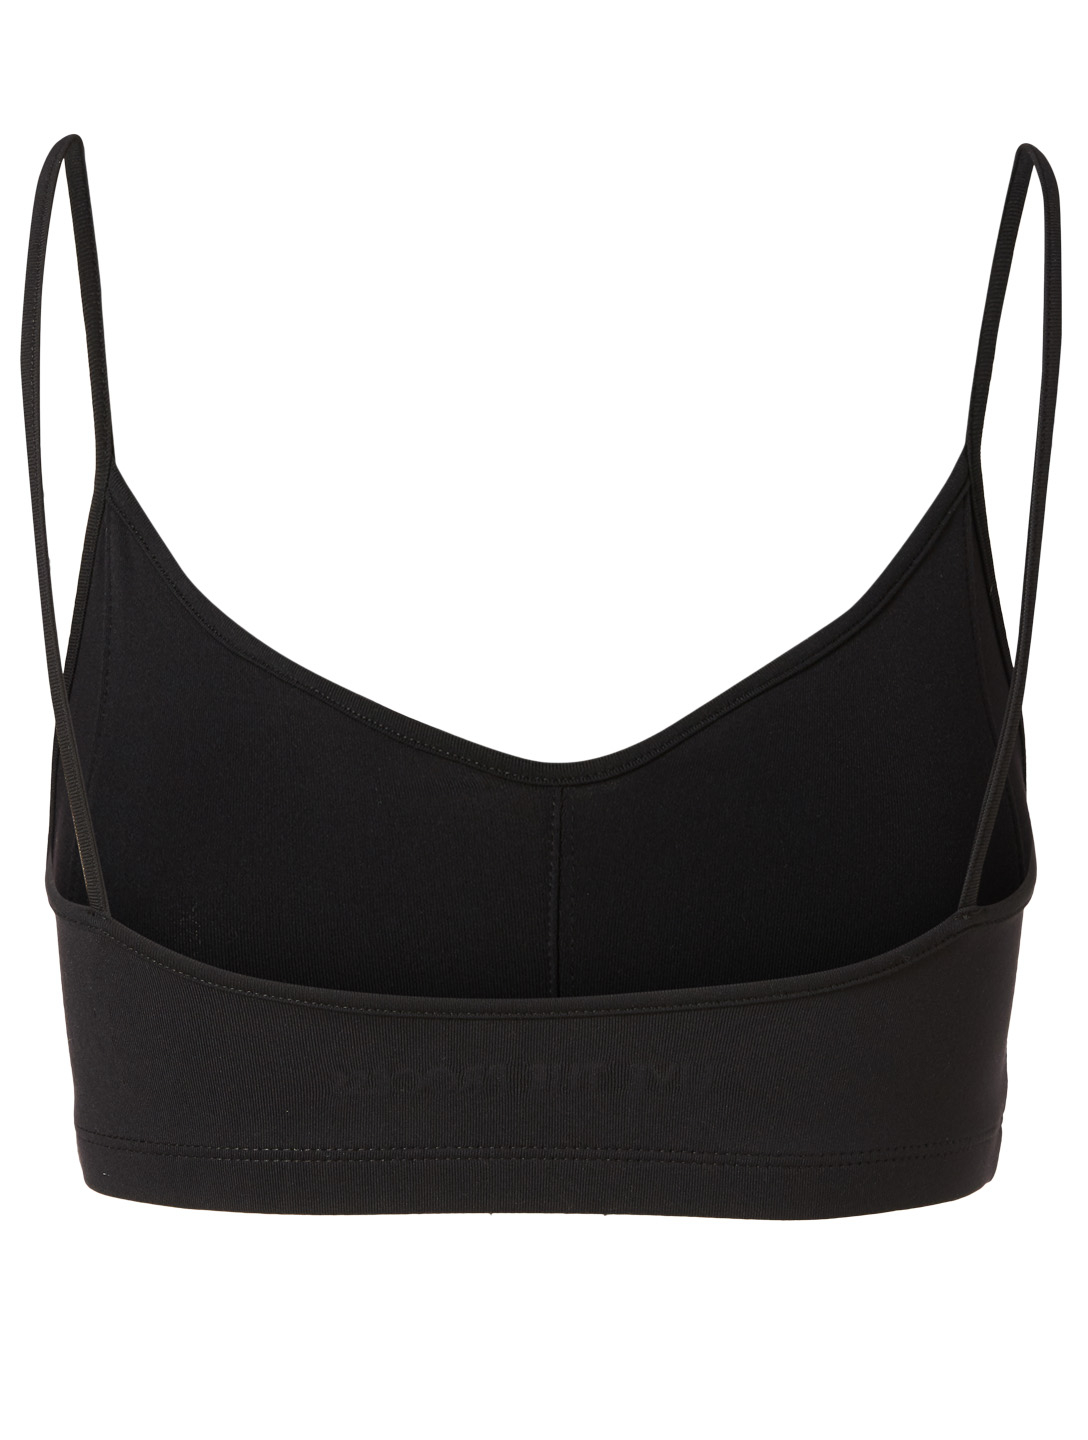 LIVE THE PROCESS Corset Bra Women's Black